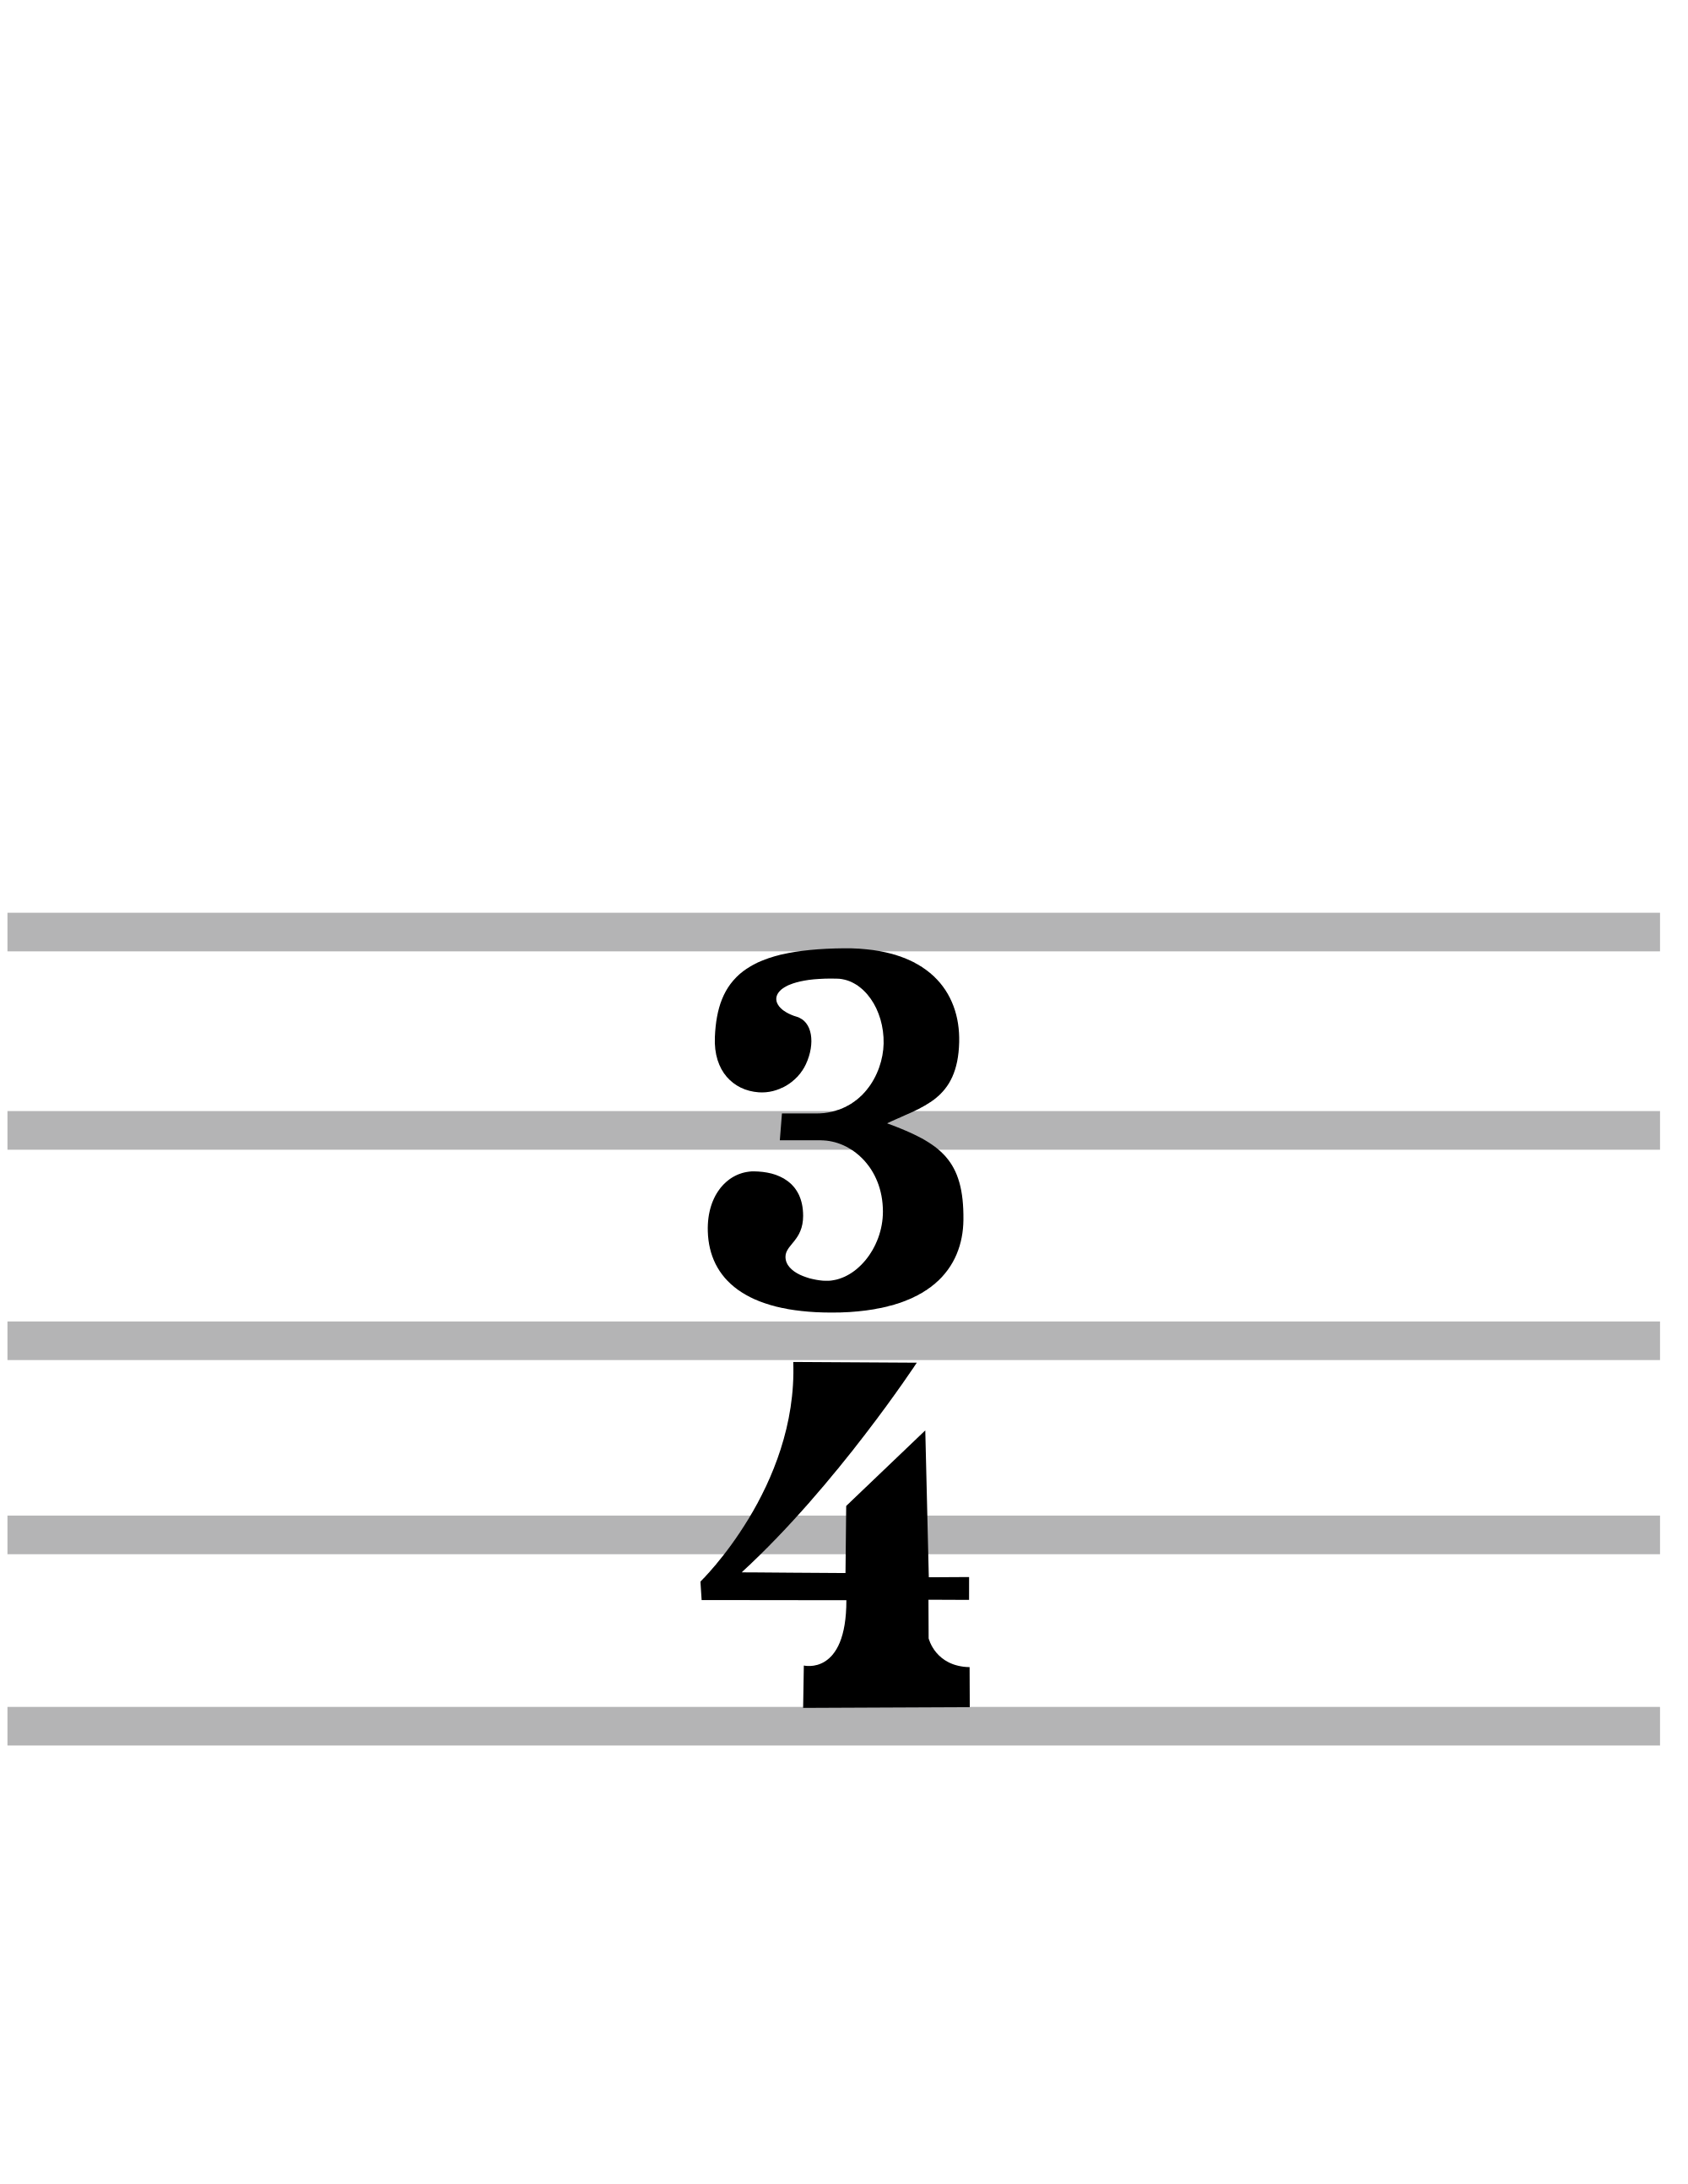 4 4 time signature png. File svg wikimedia commons